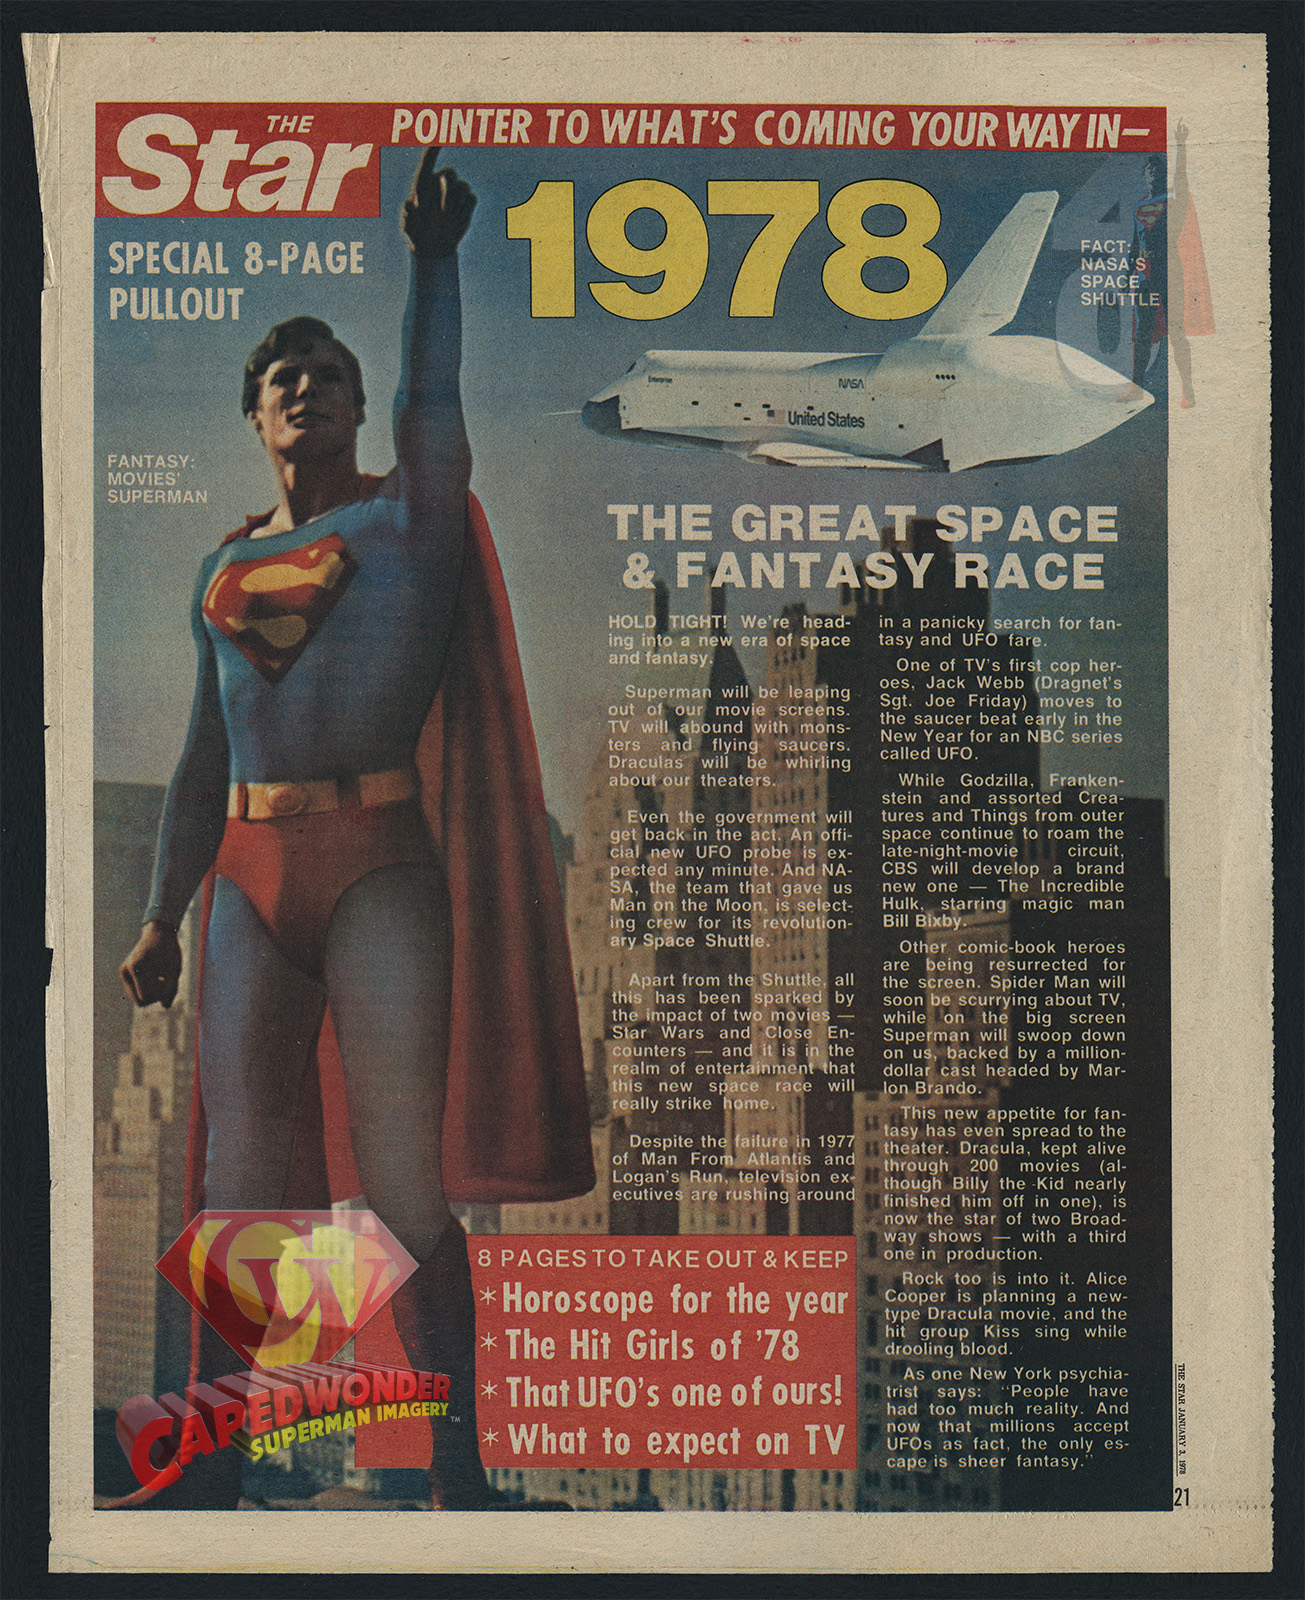 CW-STM-The-Star-Jan-03-78